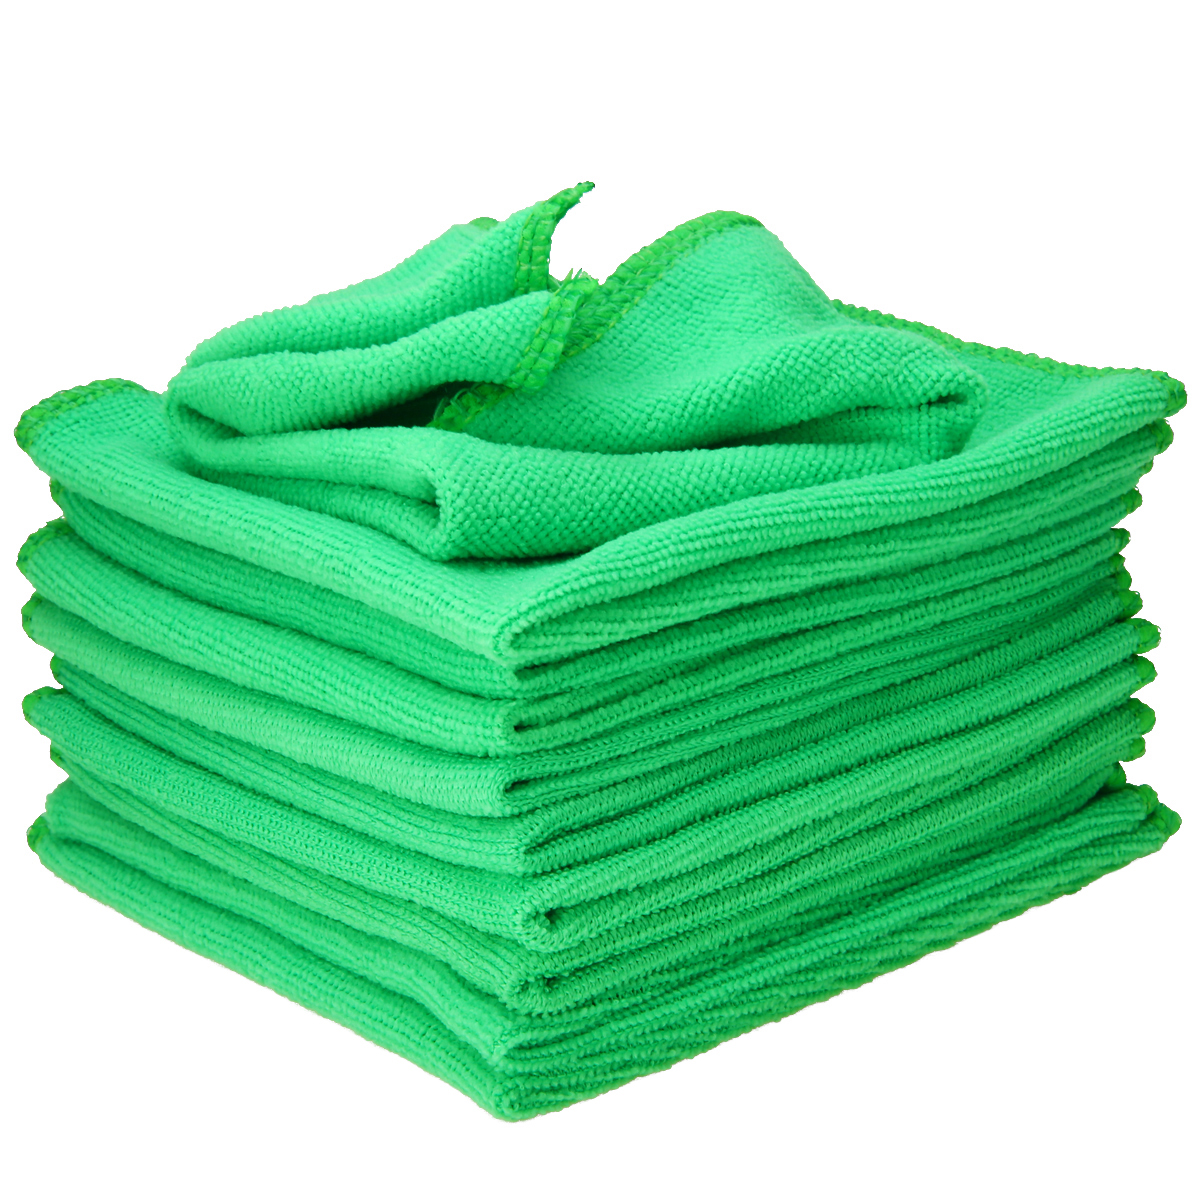 10pcs/set 25 x 25cm Microfiber Car Wash Towel Soft Cleaning Auto Car Care Detailing Cloths Wash Towel-in Sponges, Cloths & Brushes from Automobiles & Motorcycles